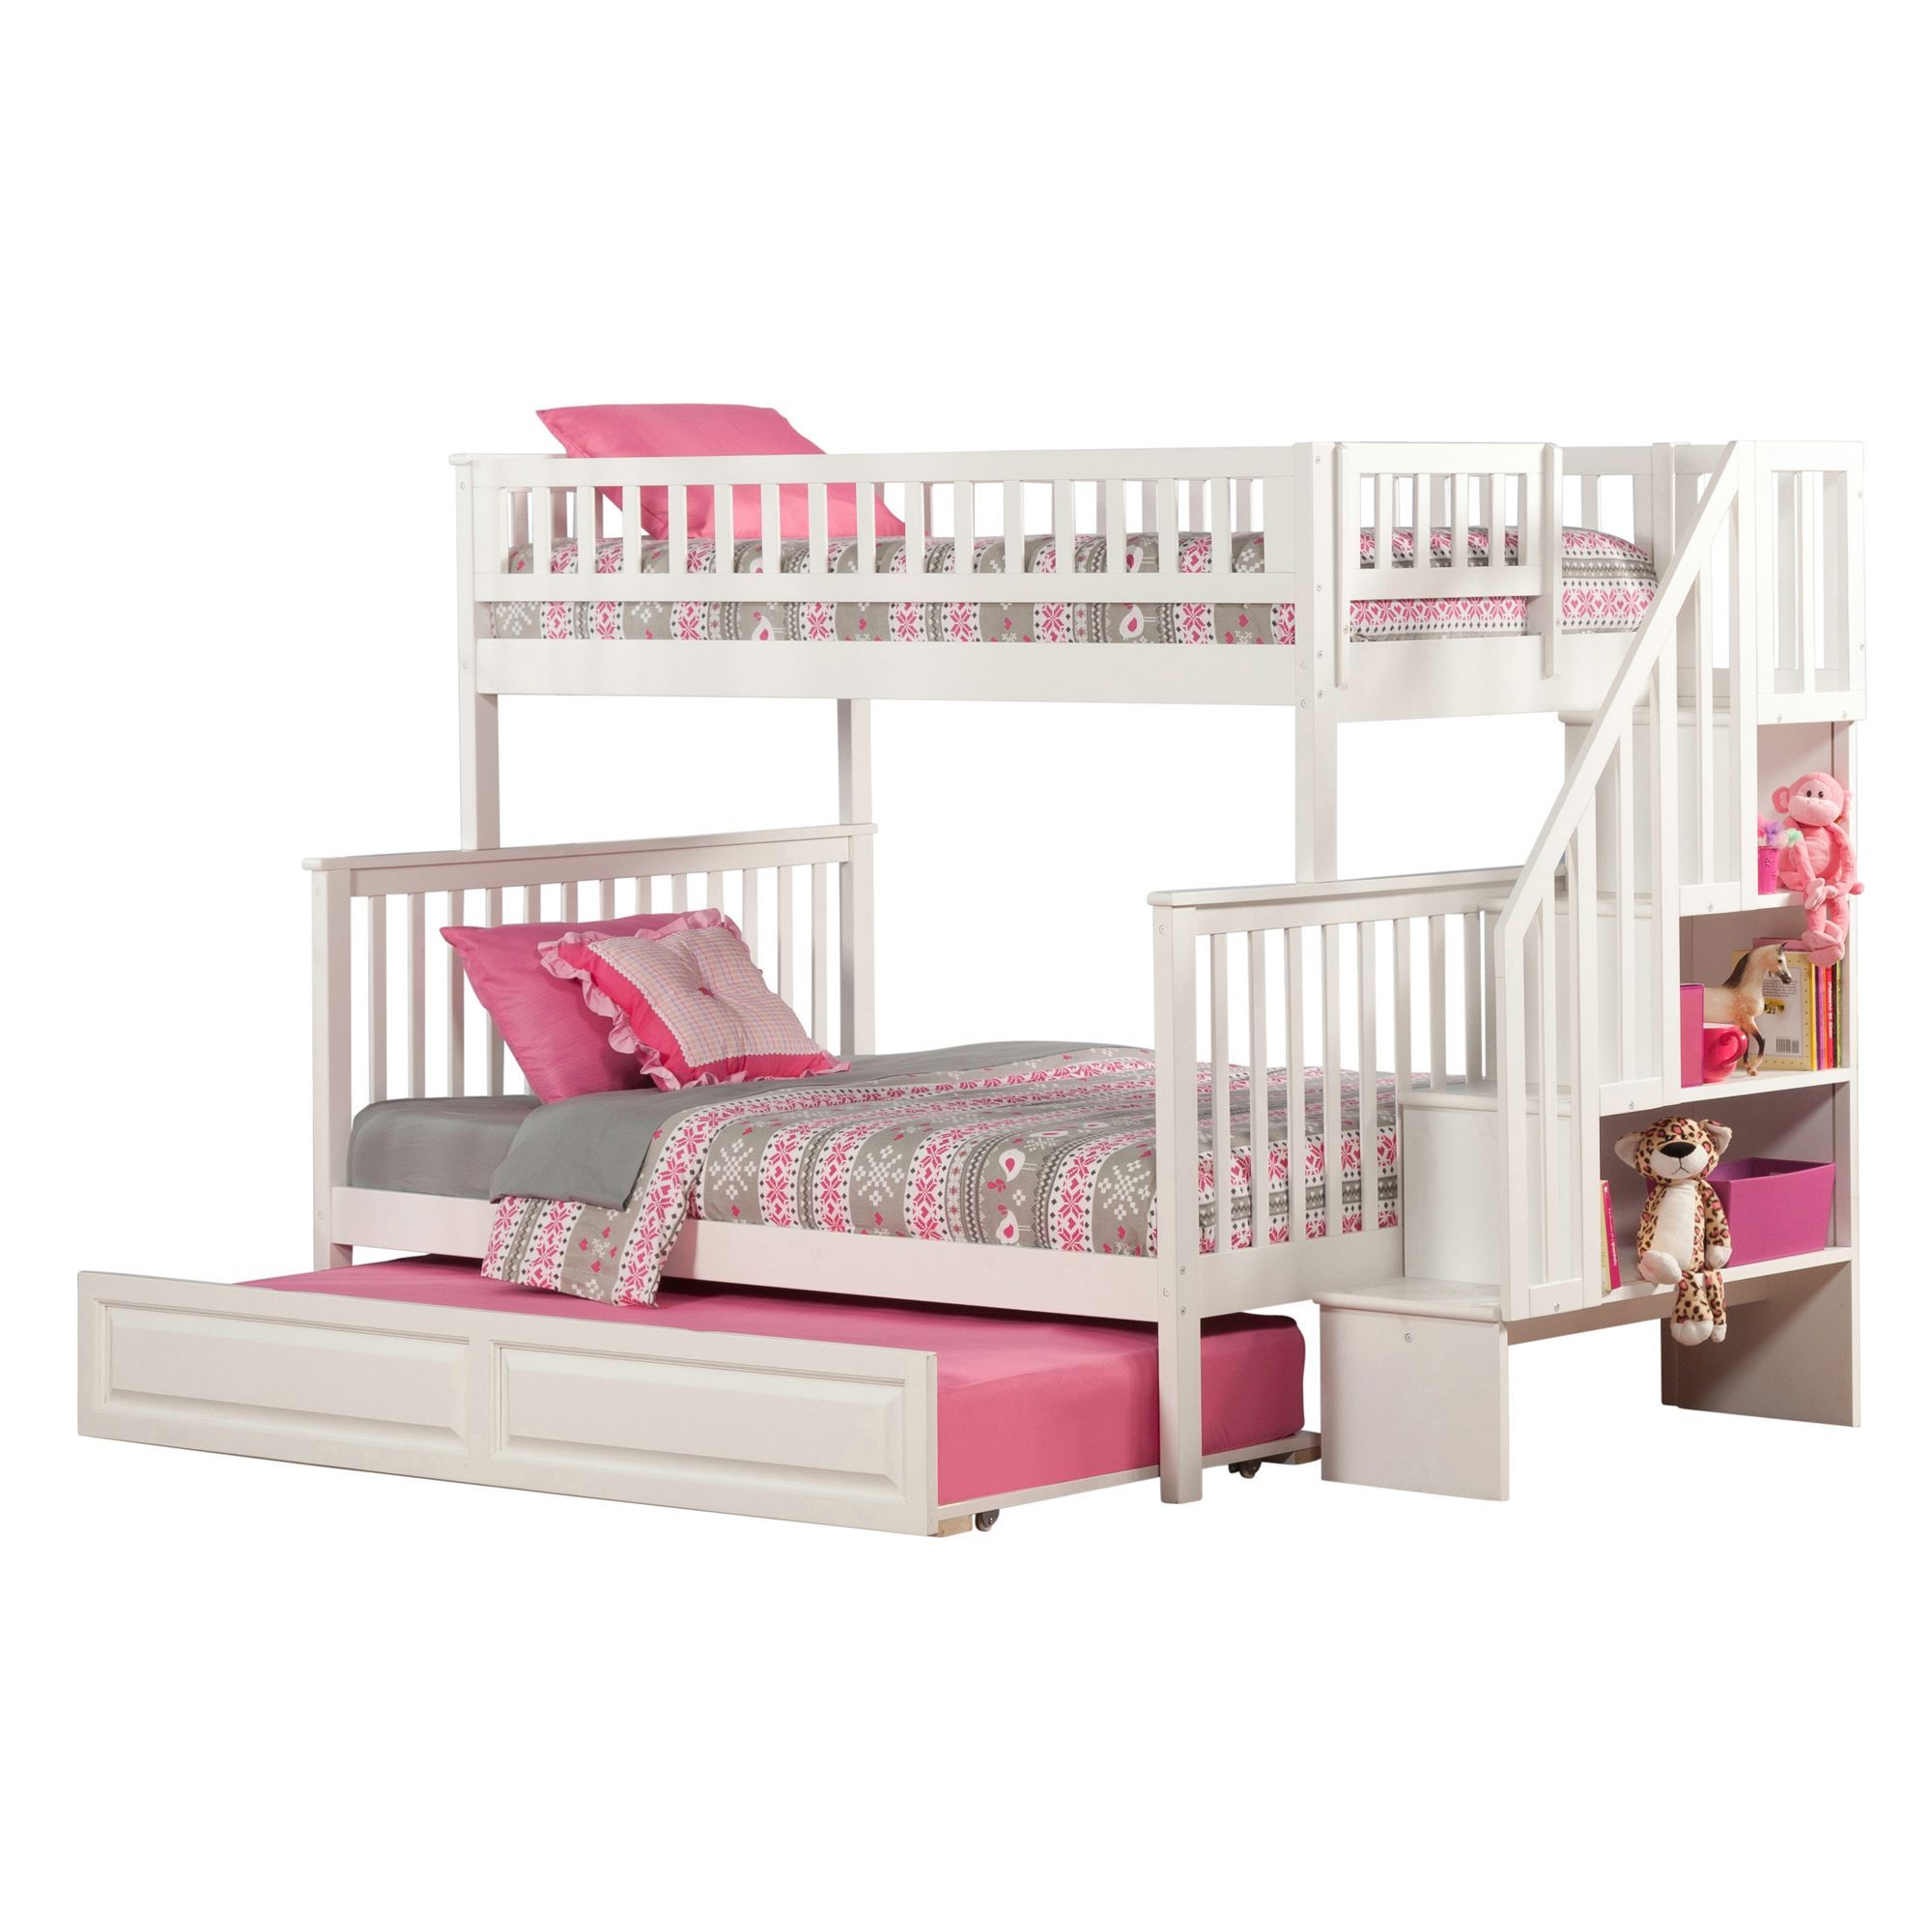 Twin over full loft bed with stairs  Atlantic Furniture Woodland Staircase Bunk Bed Twin over Full with